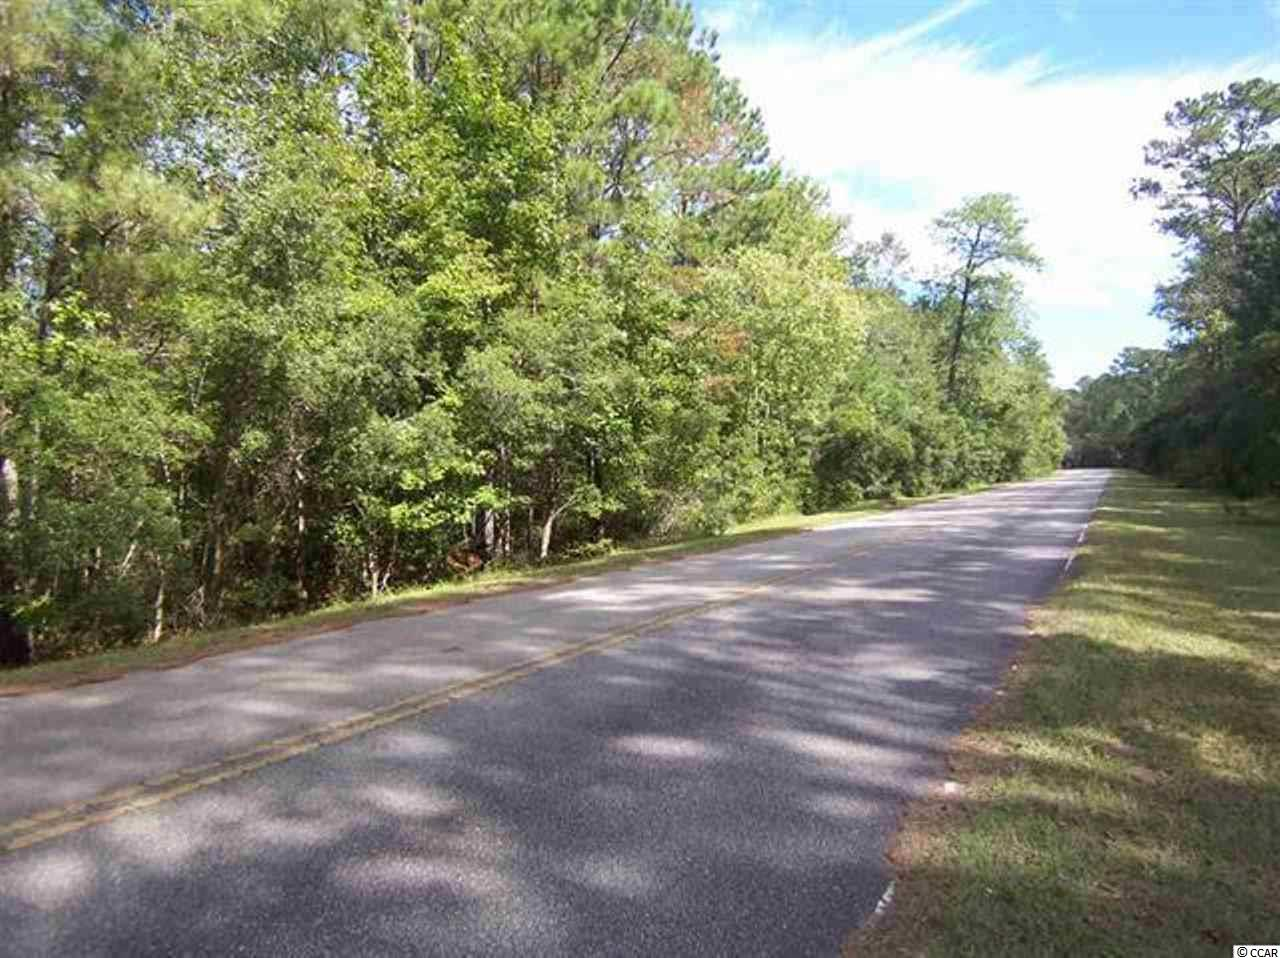 Come see this quiet 1/2 acre lot that offers access to major highways to make travelling the area a breeze.  You can build new or bring in your modular or manufactured as well. This is the last remaining lot of the four  in this slip of land. Call if you have any questions or would like to see the property.